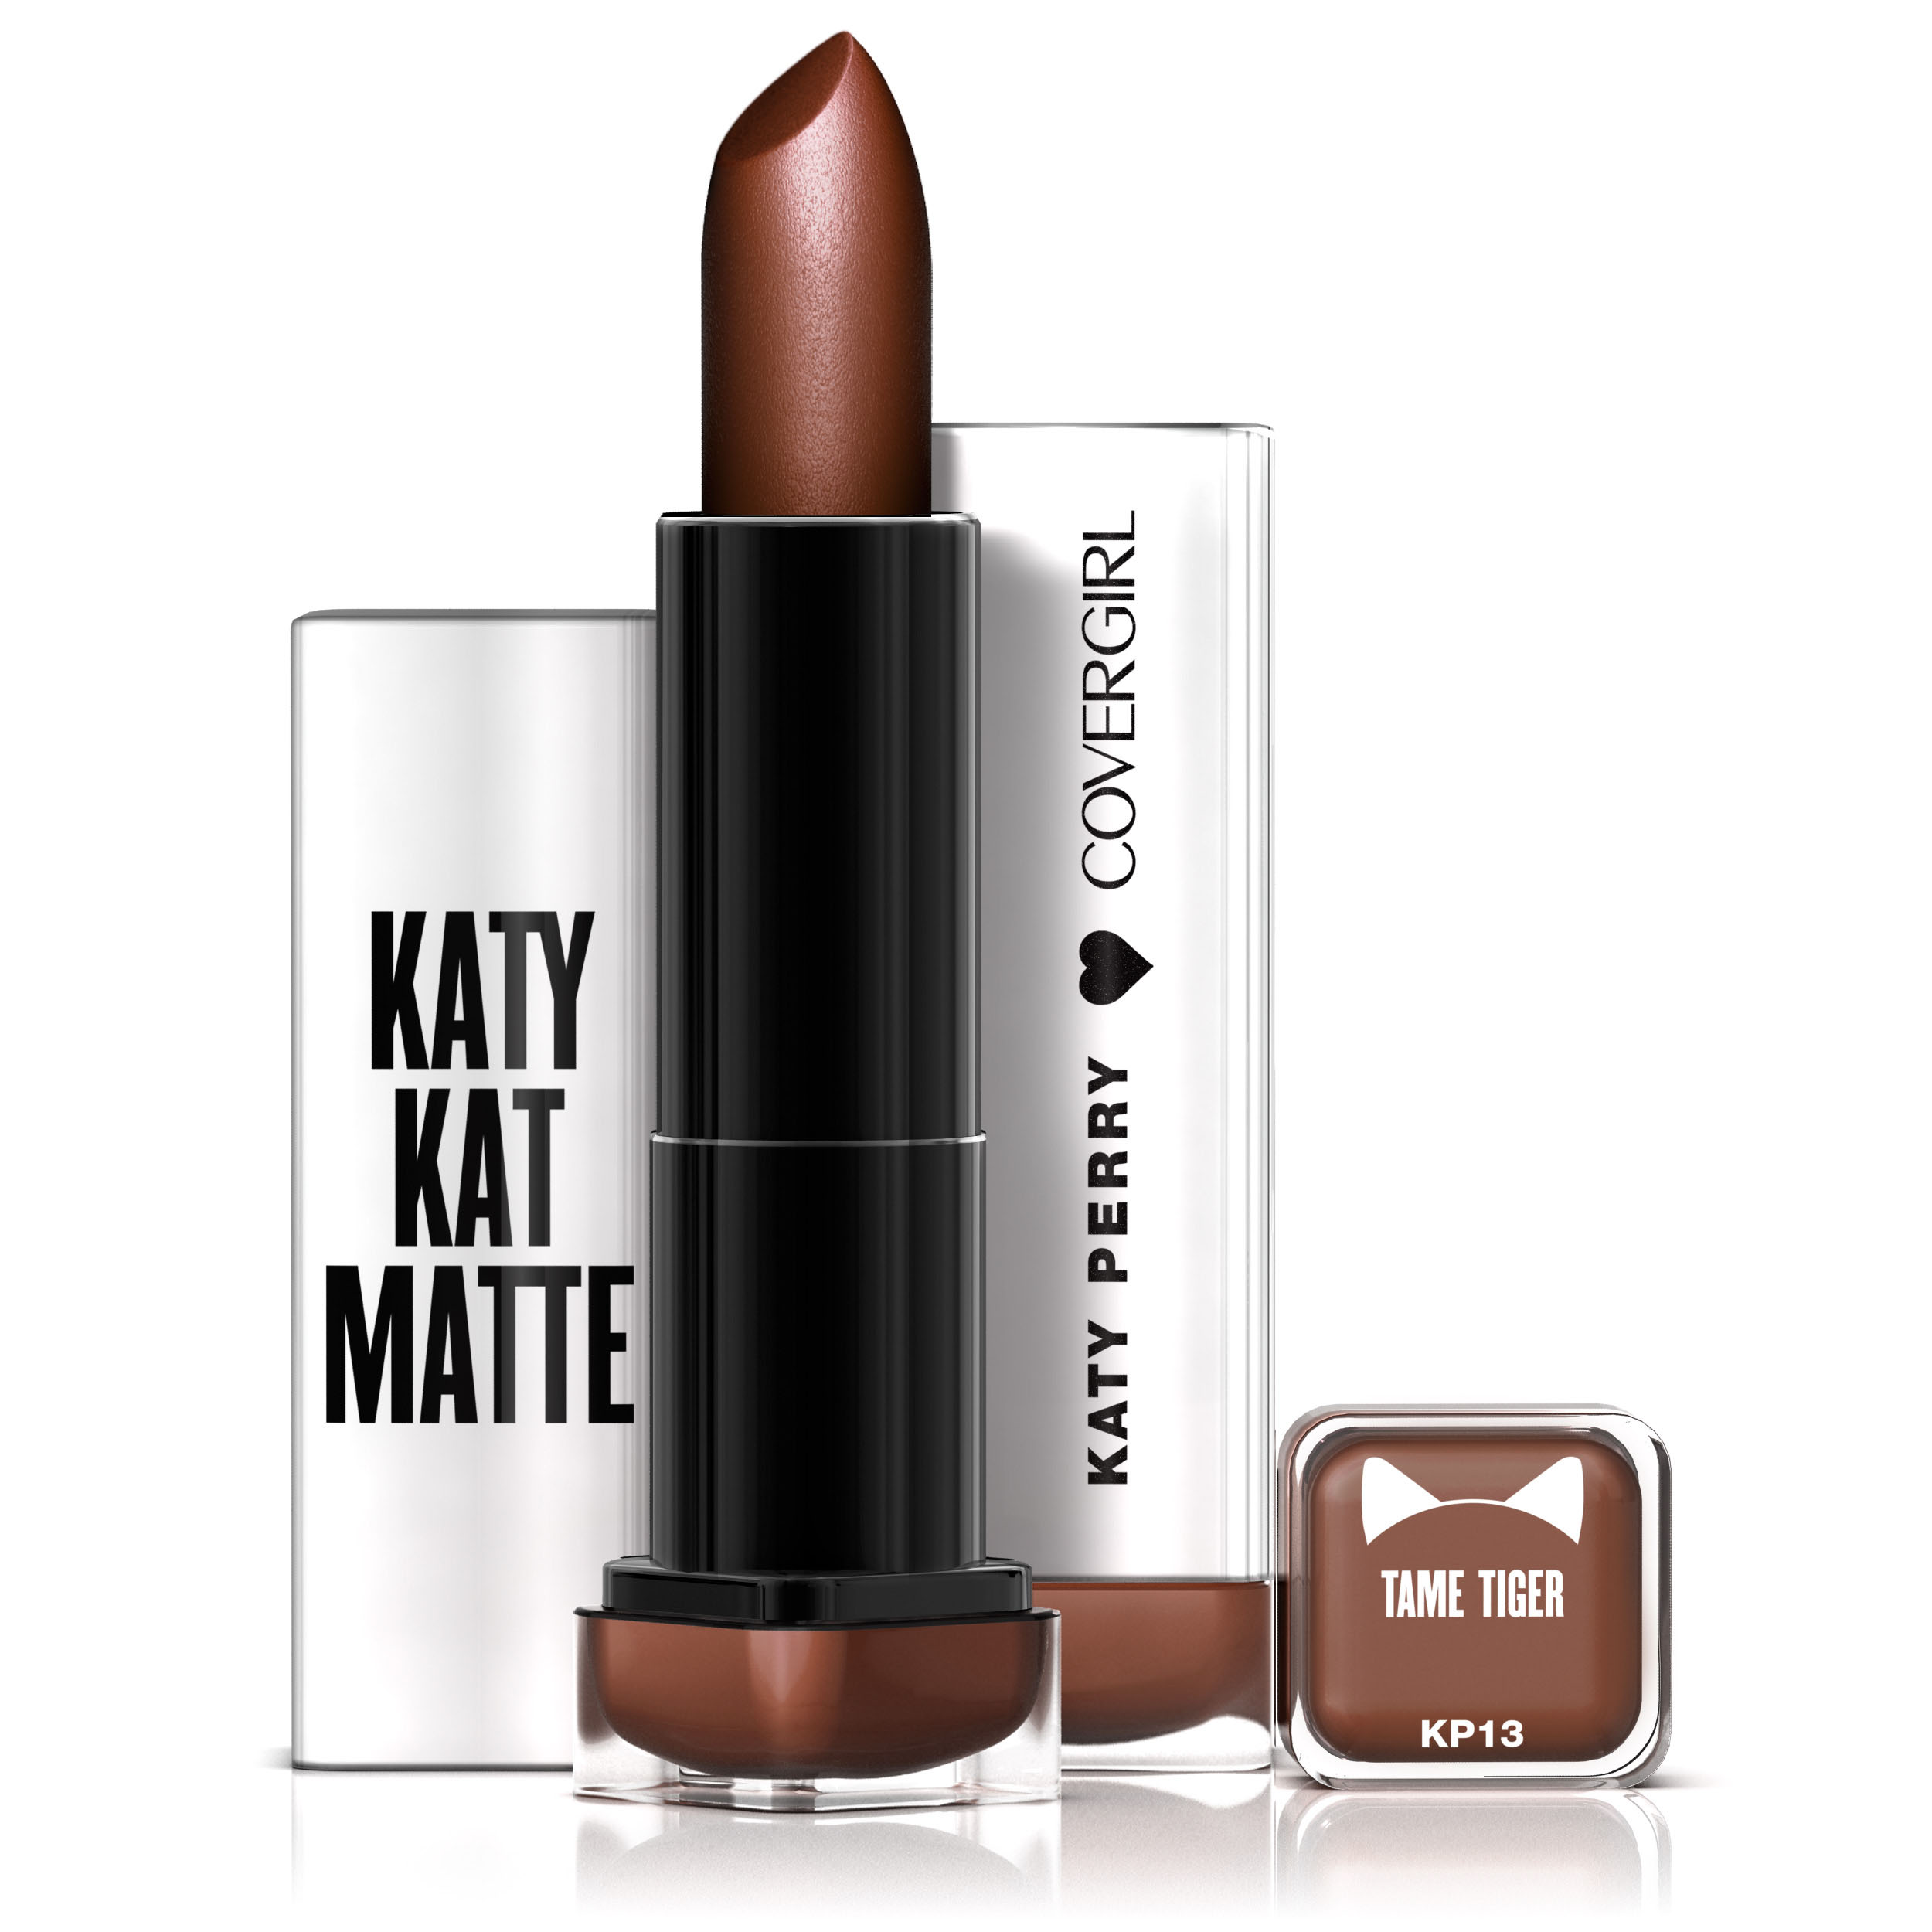 COVERGIRL Colorlicious Katy Kat Matte Lipstick Tame Tiger, .12 oz